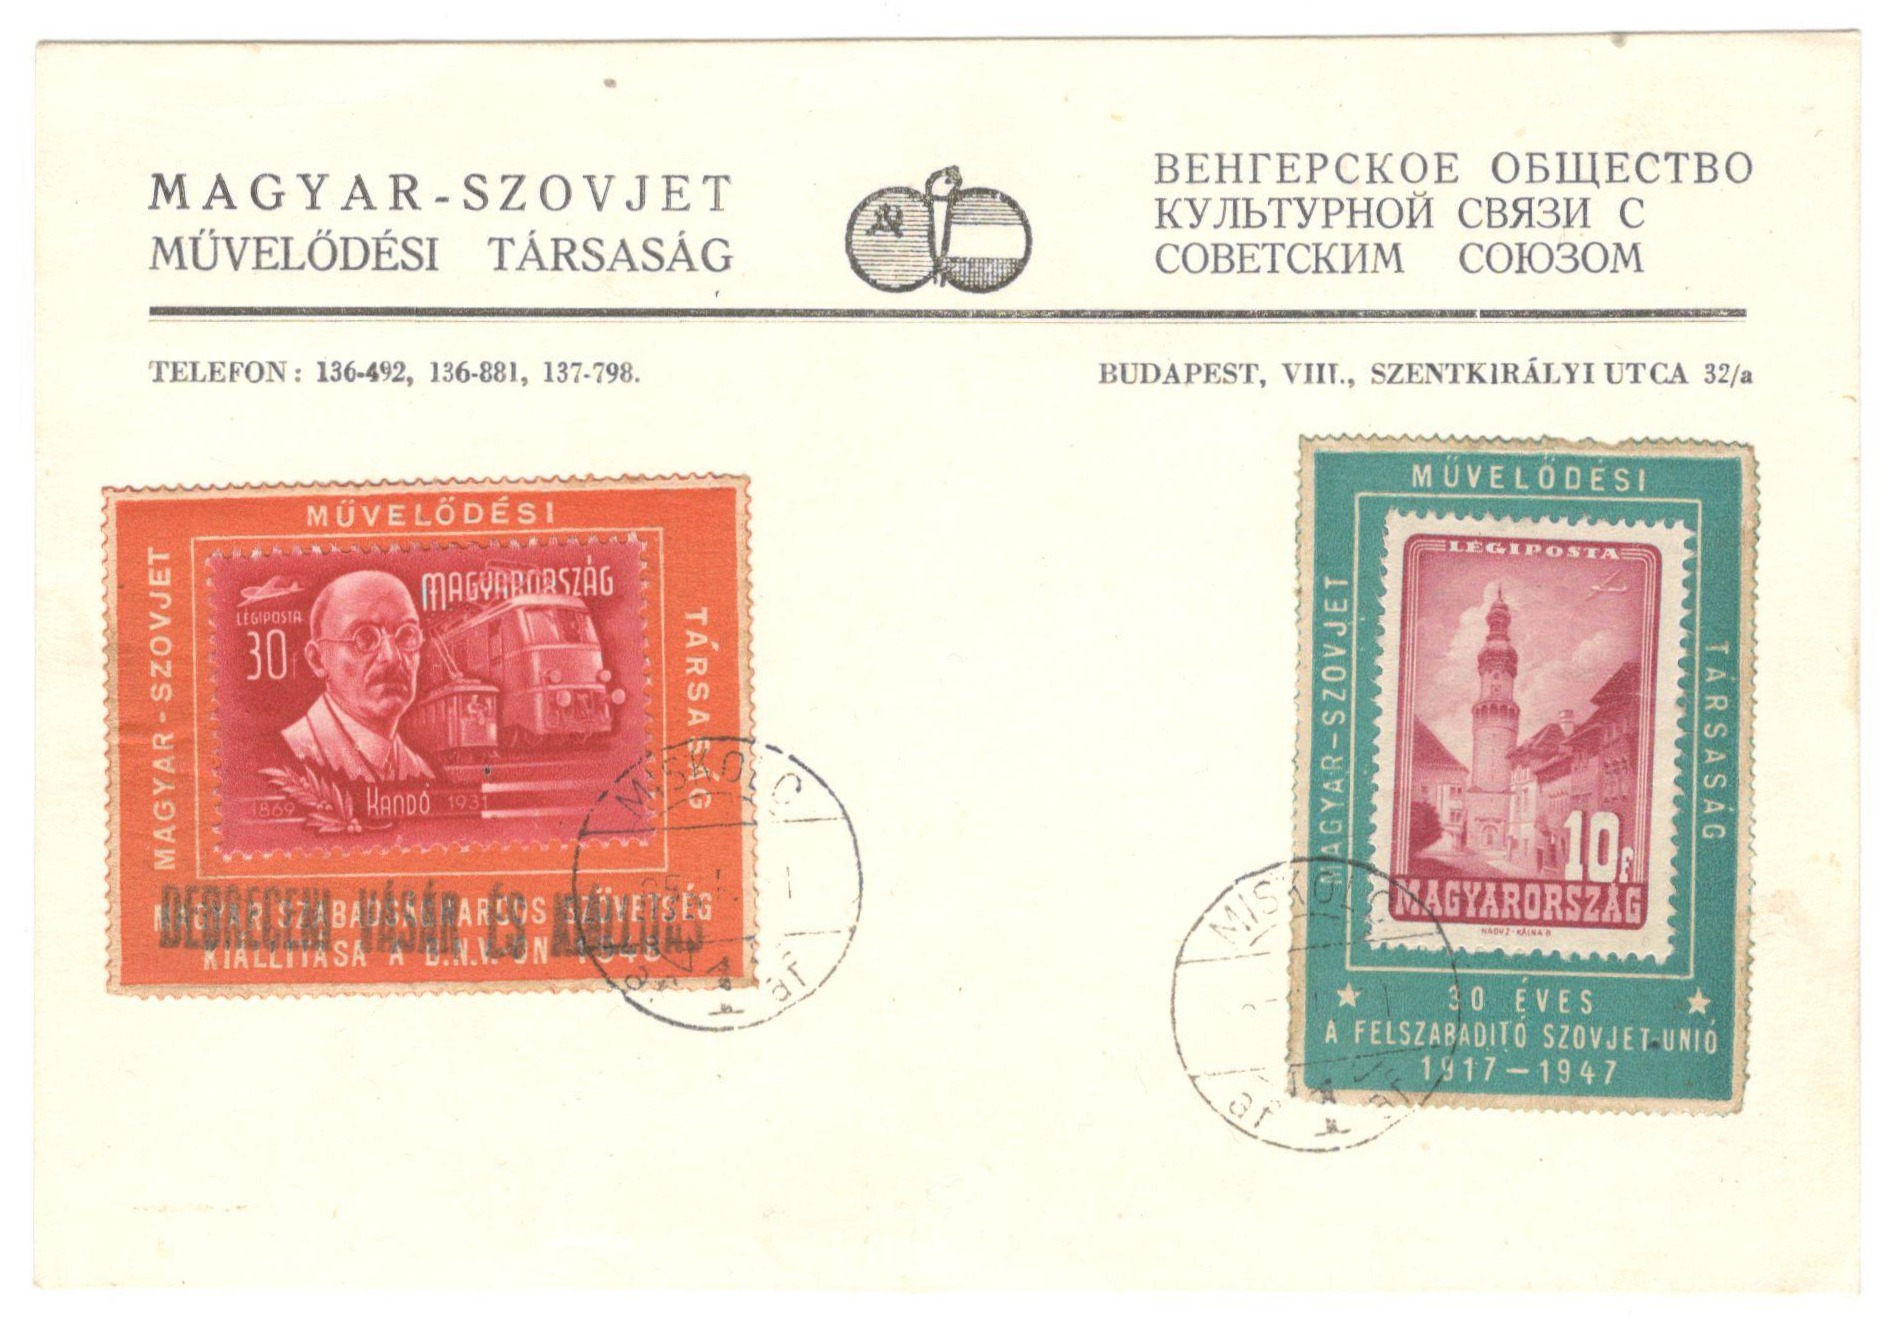 Lot 59 - TWO STAMPS WITH ADVERTISING STAMP COLLAR FOR HUNGARIAN-SOVIET CULTURAL ASSOCIATION 1947